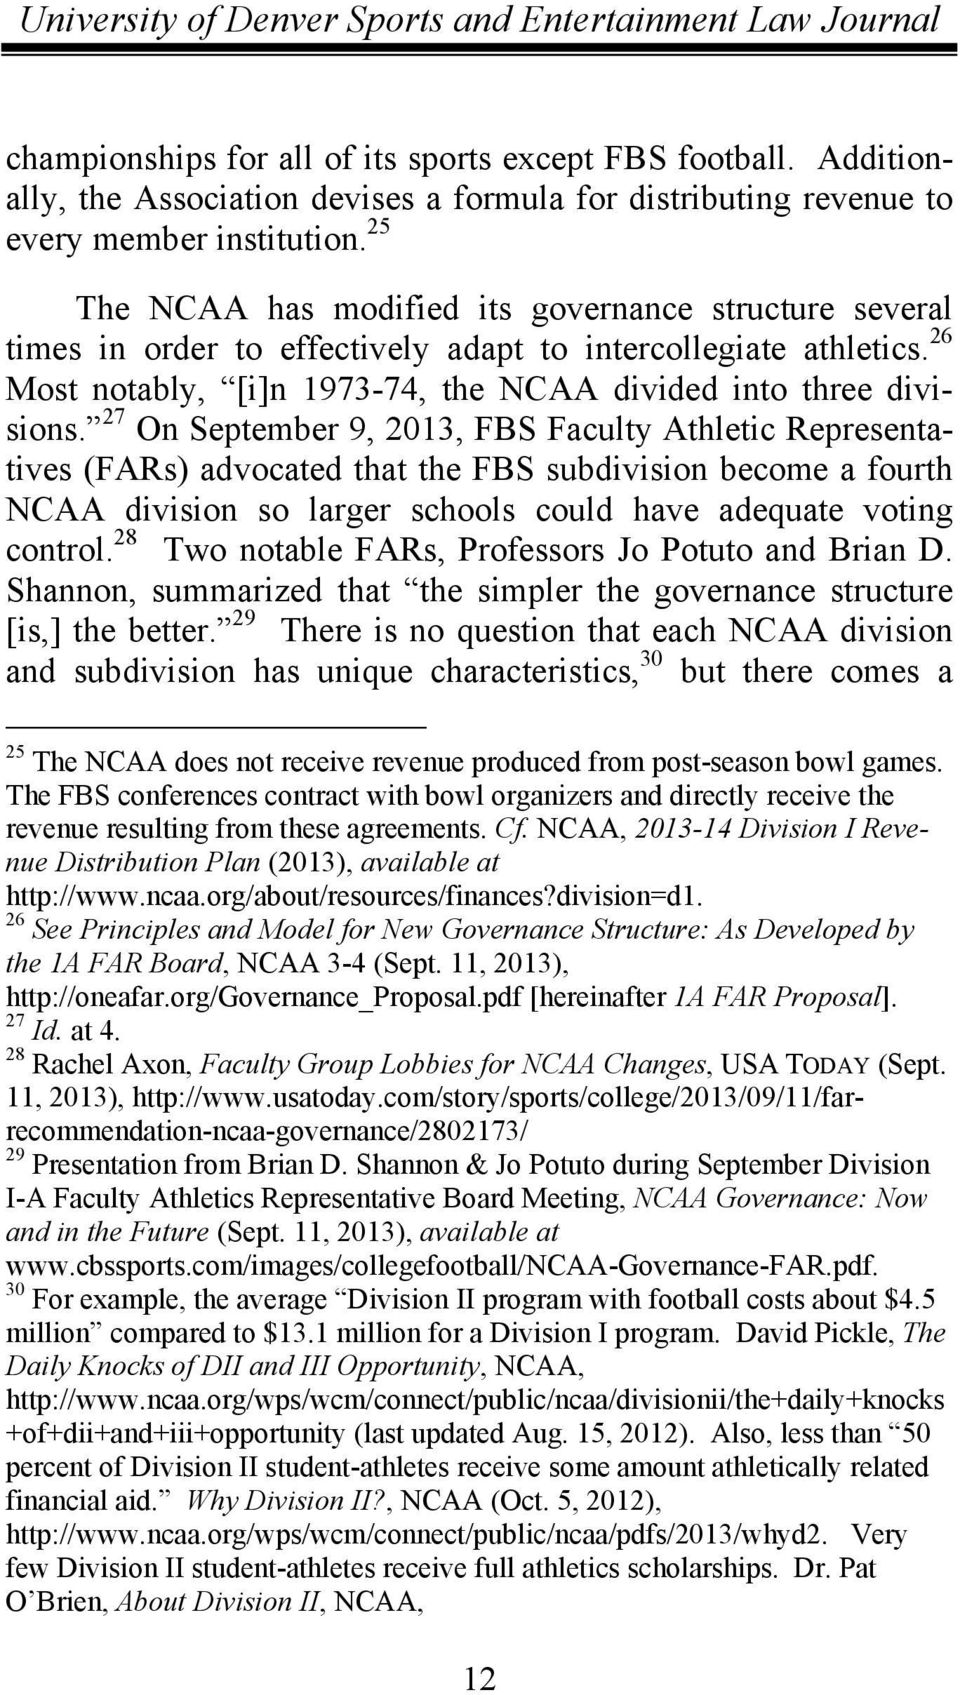 27 On September 9, 2013, FBS Faculty Athletic Representatives (FARs) advocated that the FBS subdivision become a fourth NCAA division so larger schools could have adequate voting control.